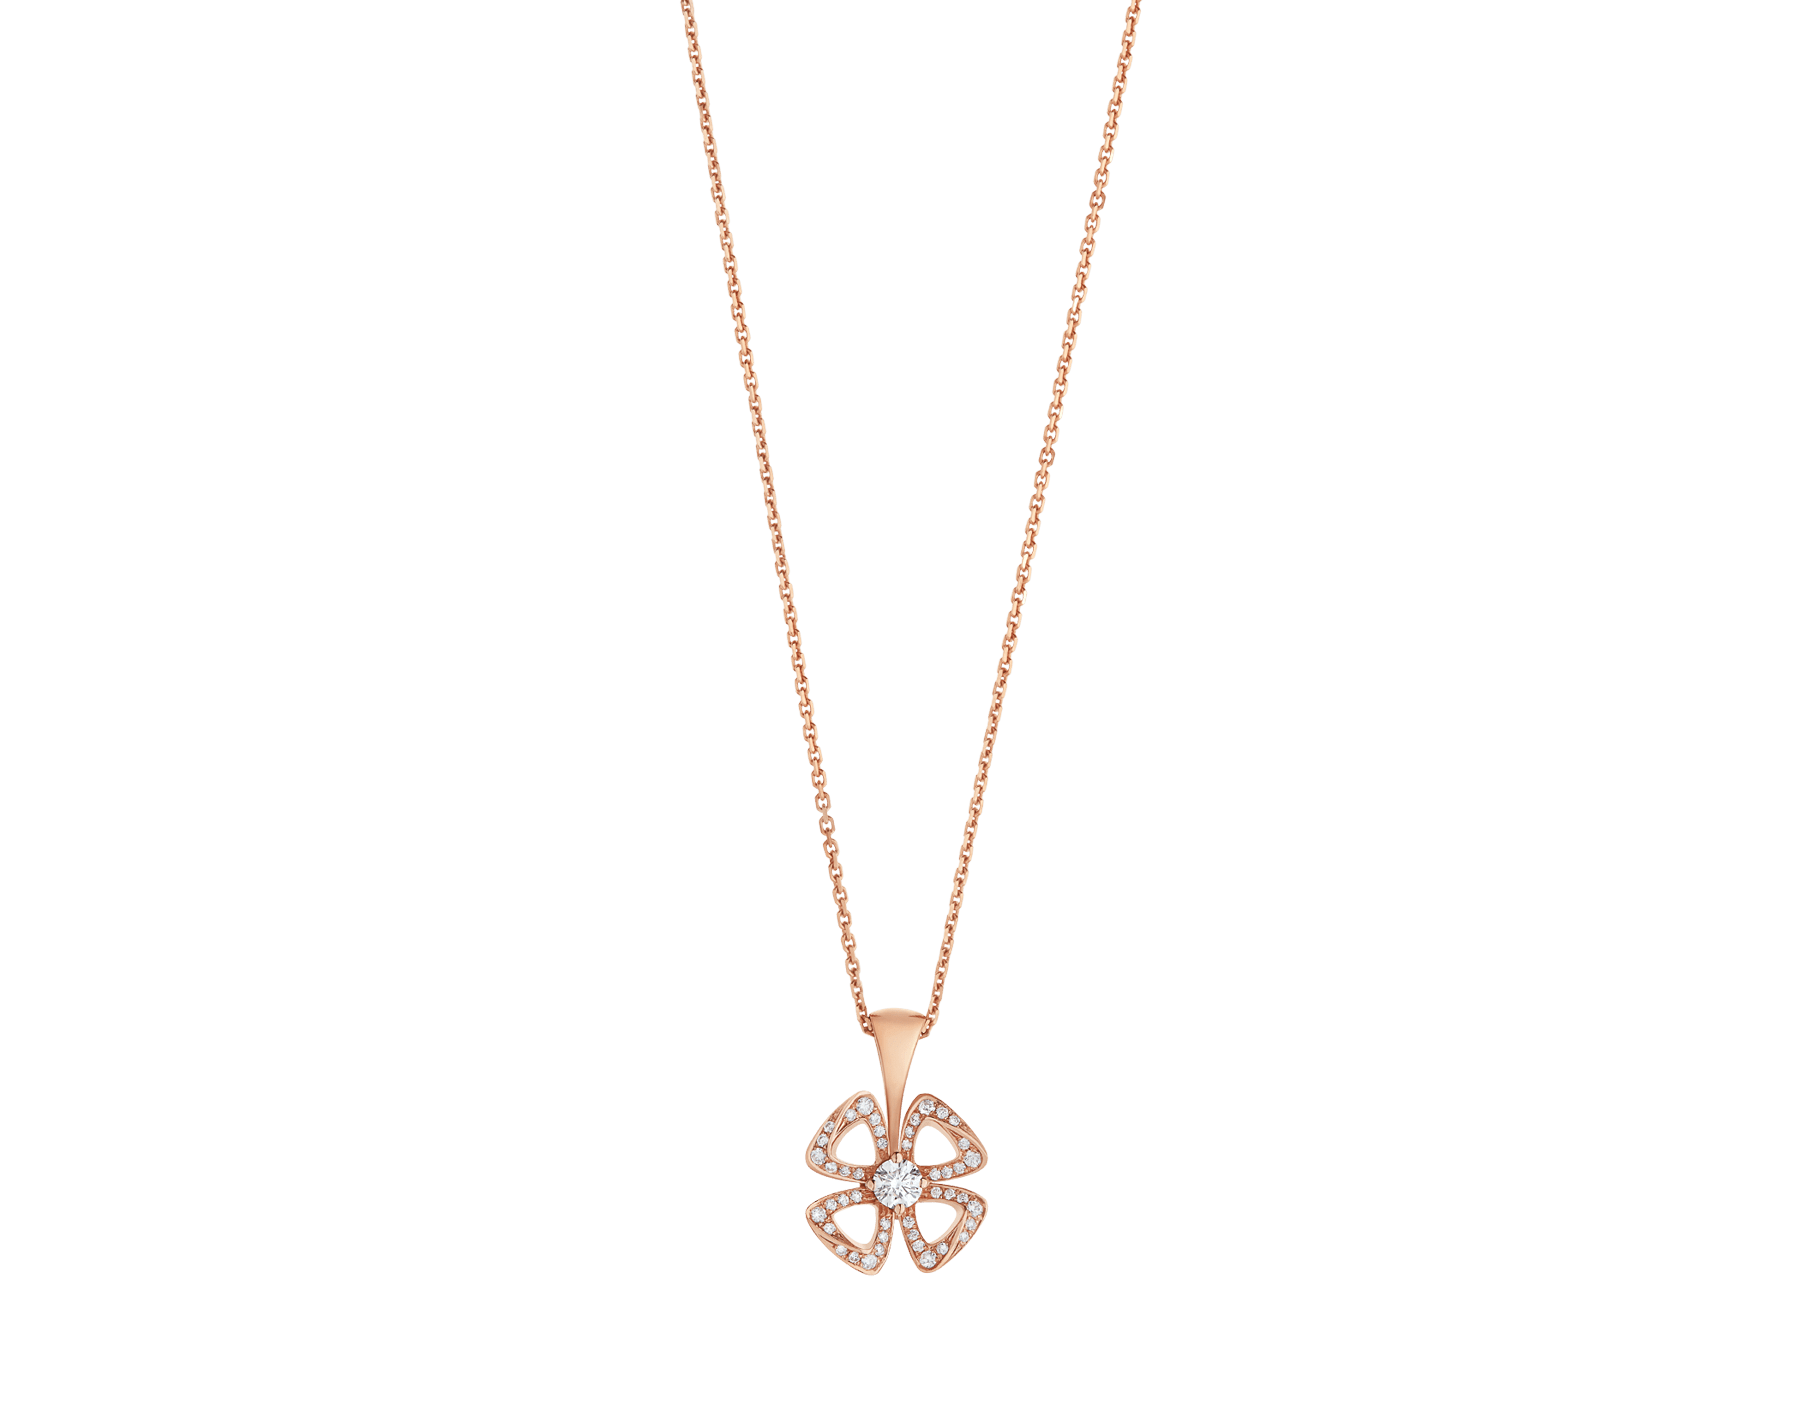 Fiorever 18 kt rose gold necklace set with a central brilliant-cut diamond (0.10 ct) and pavé diamonds (0.06 ct) 358156 image 1